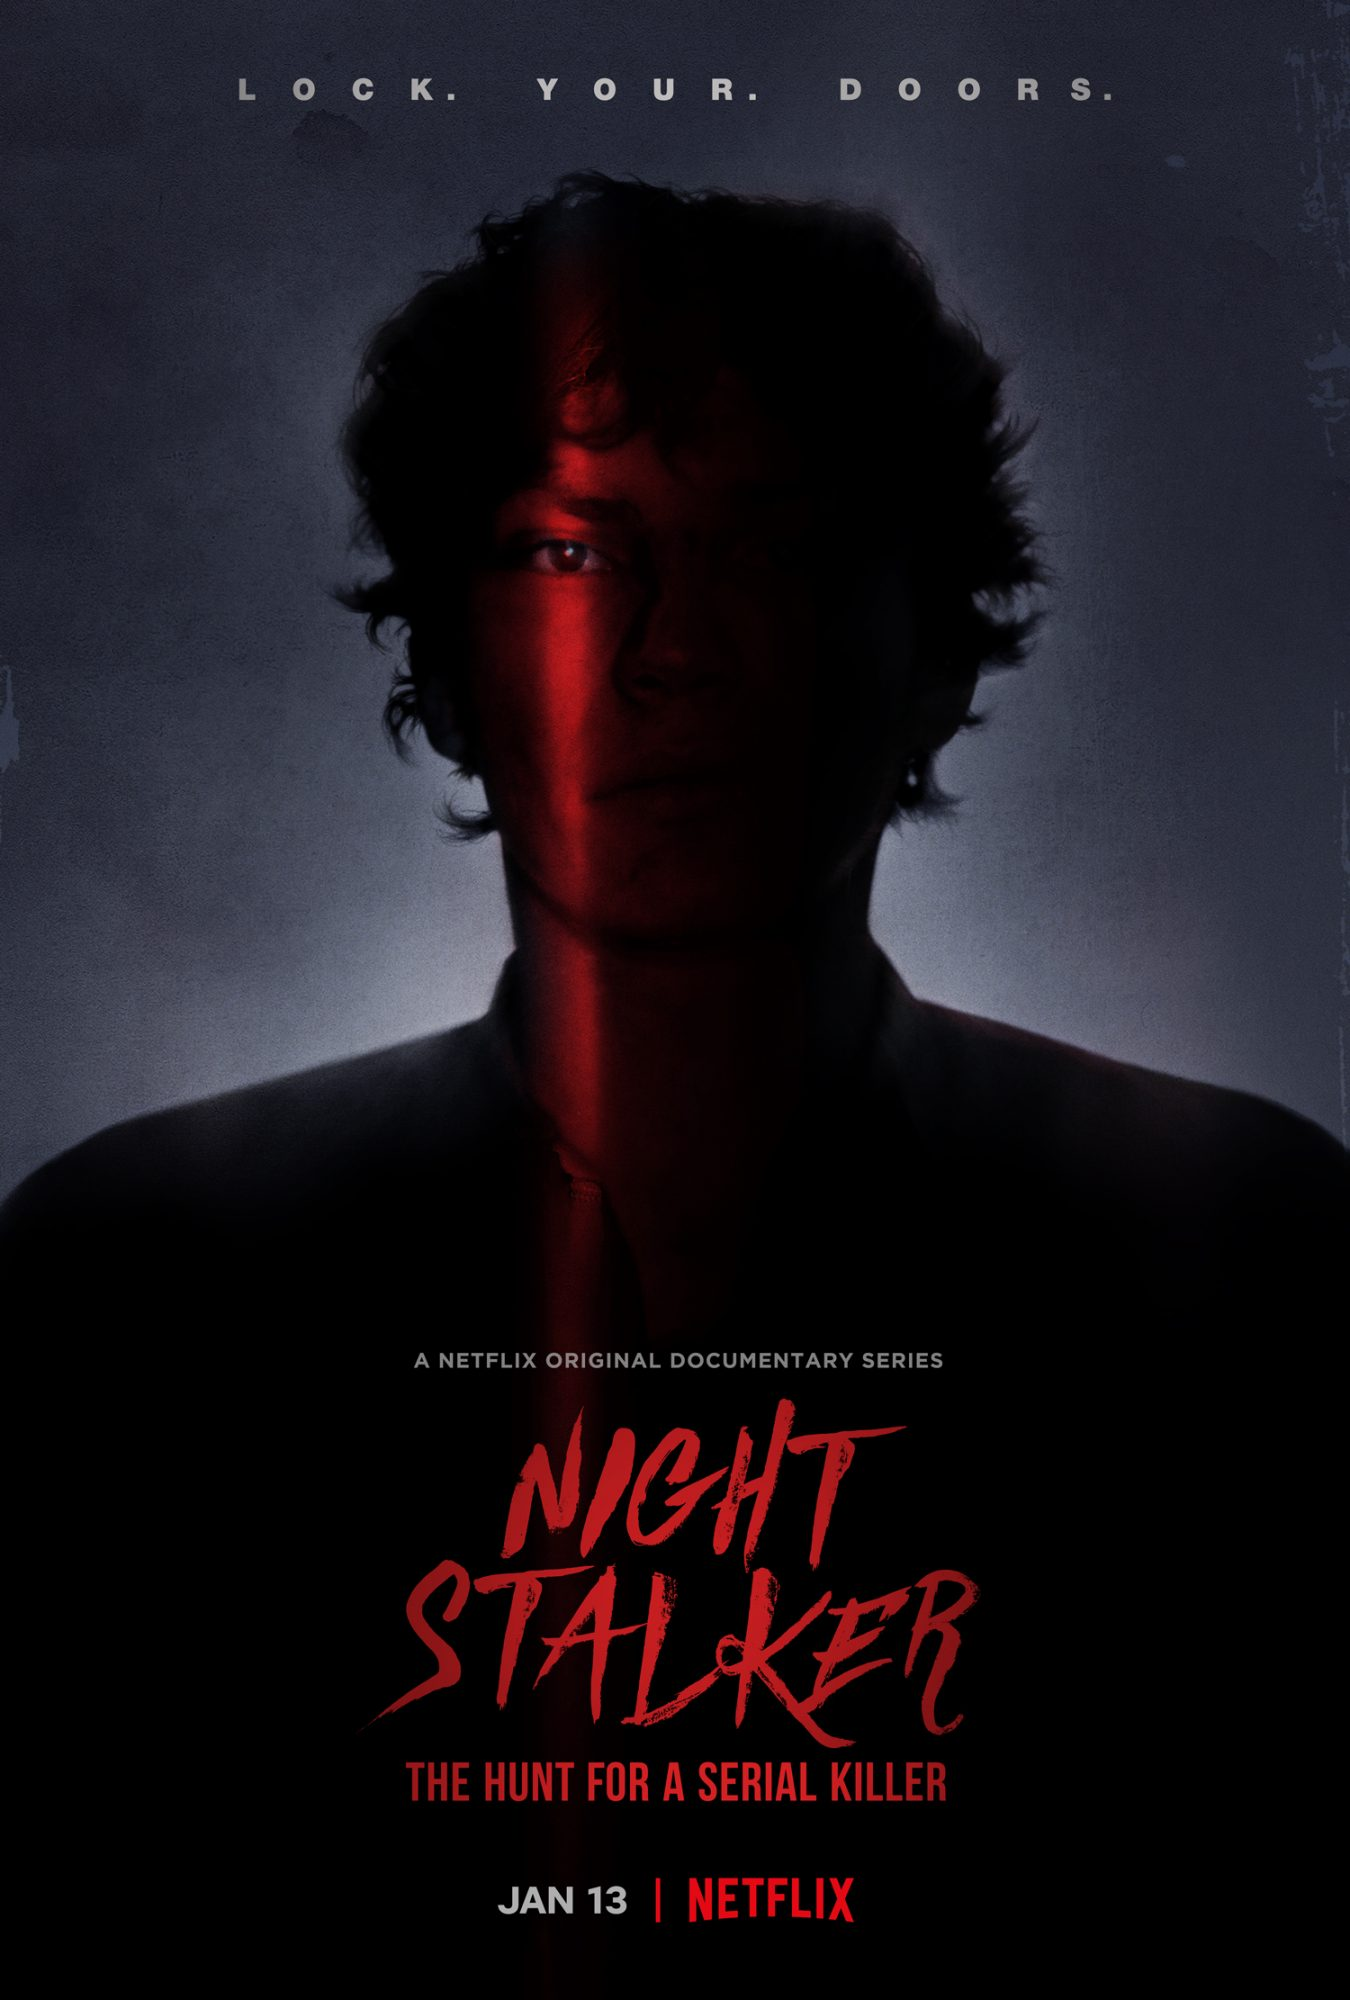 Netflix - The Night Stalker DI Colorist Shane Reed